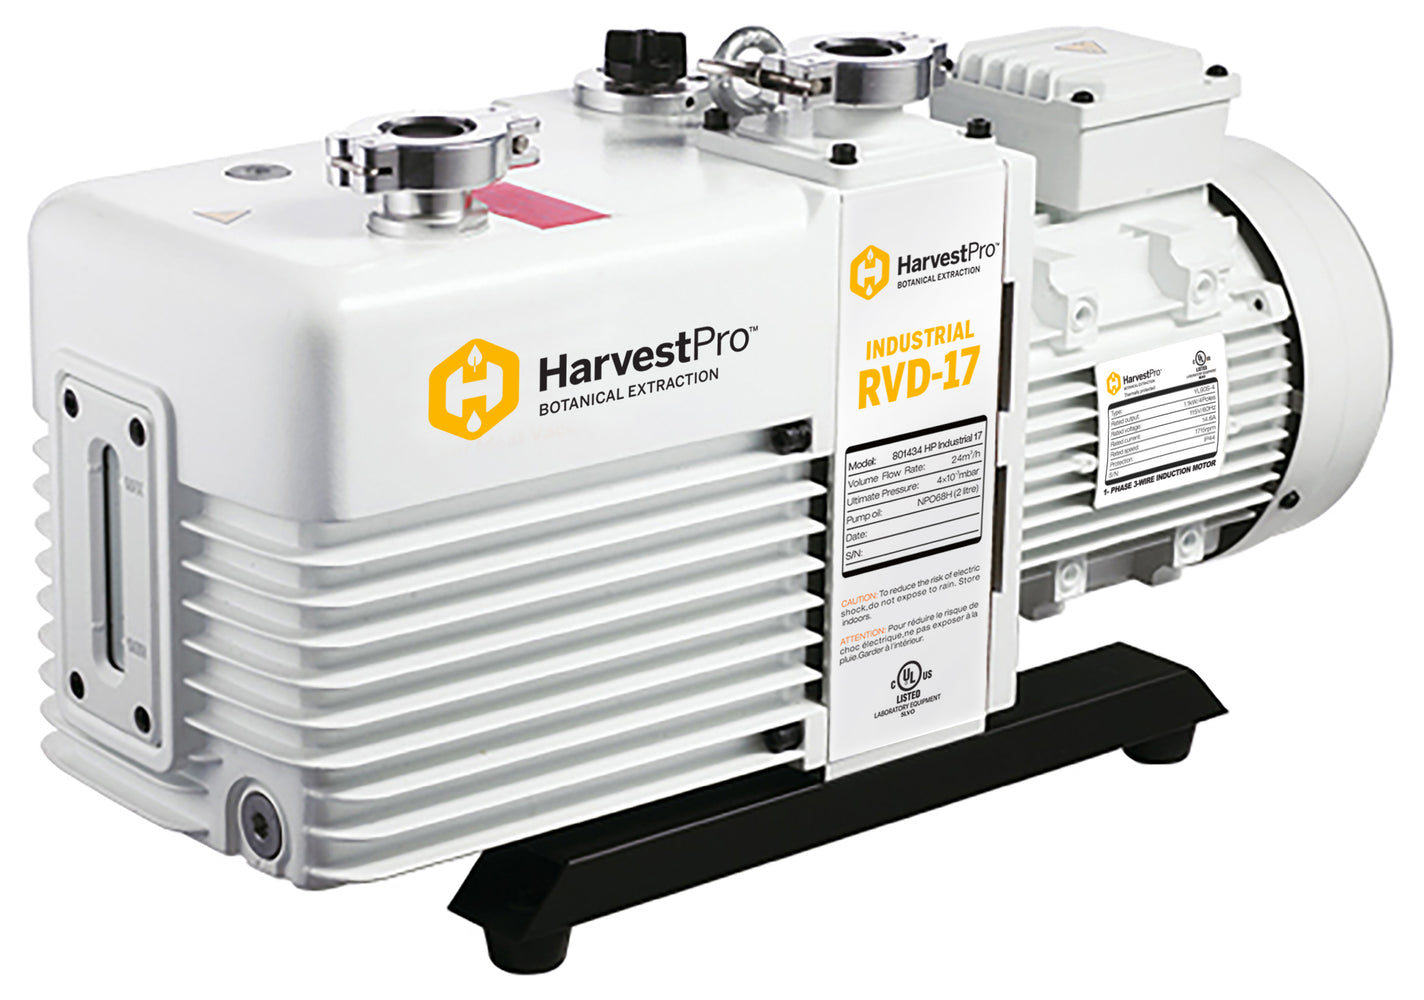 Grow Kings - Harvest Pro Industrial RVD-21 Vacuum Pump - 115 Volt 60 Hz 1 Phase